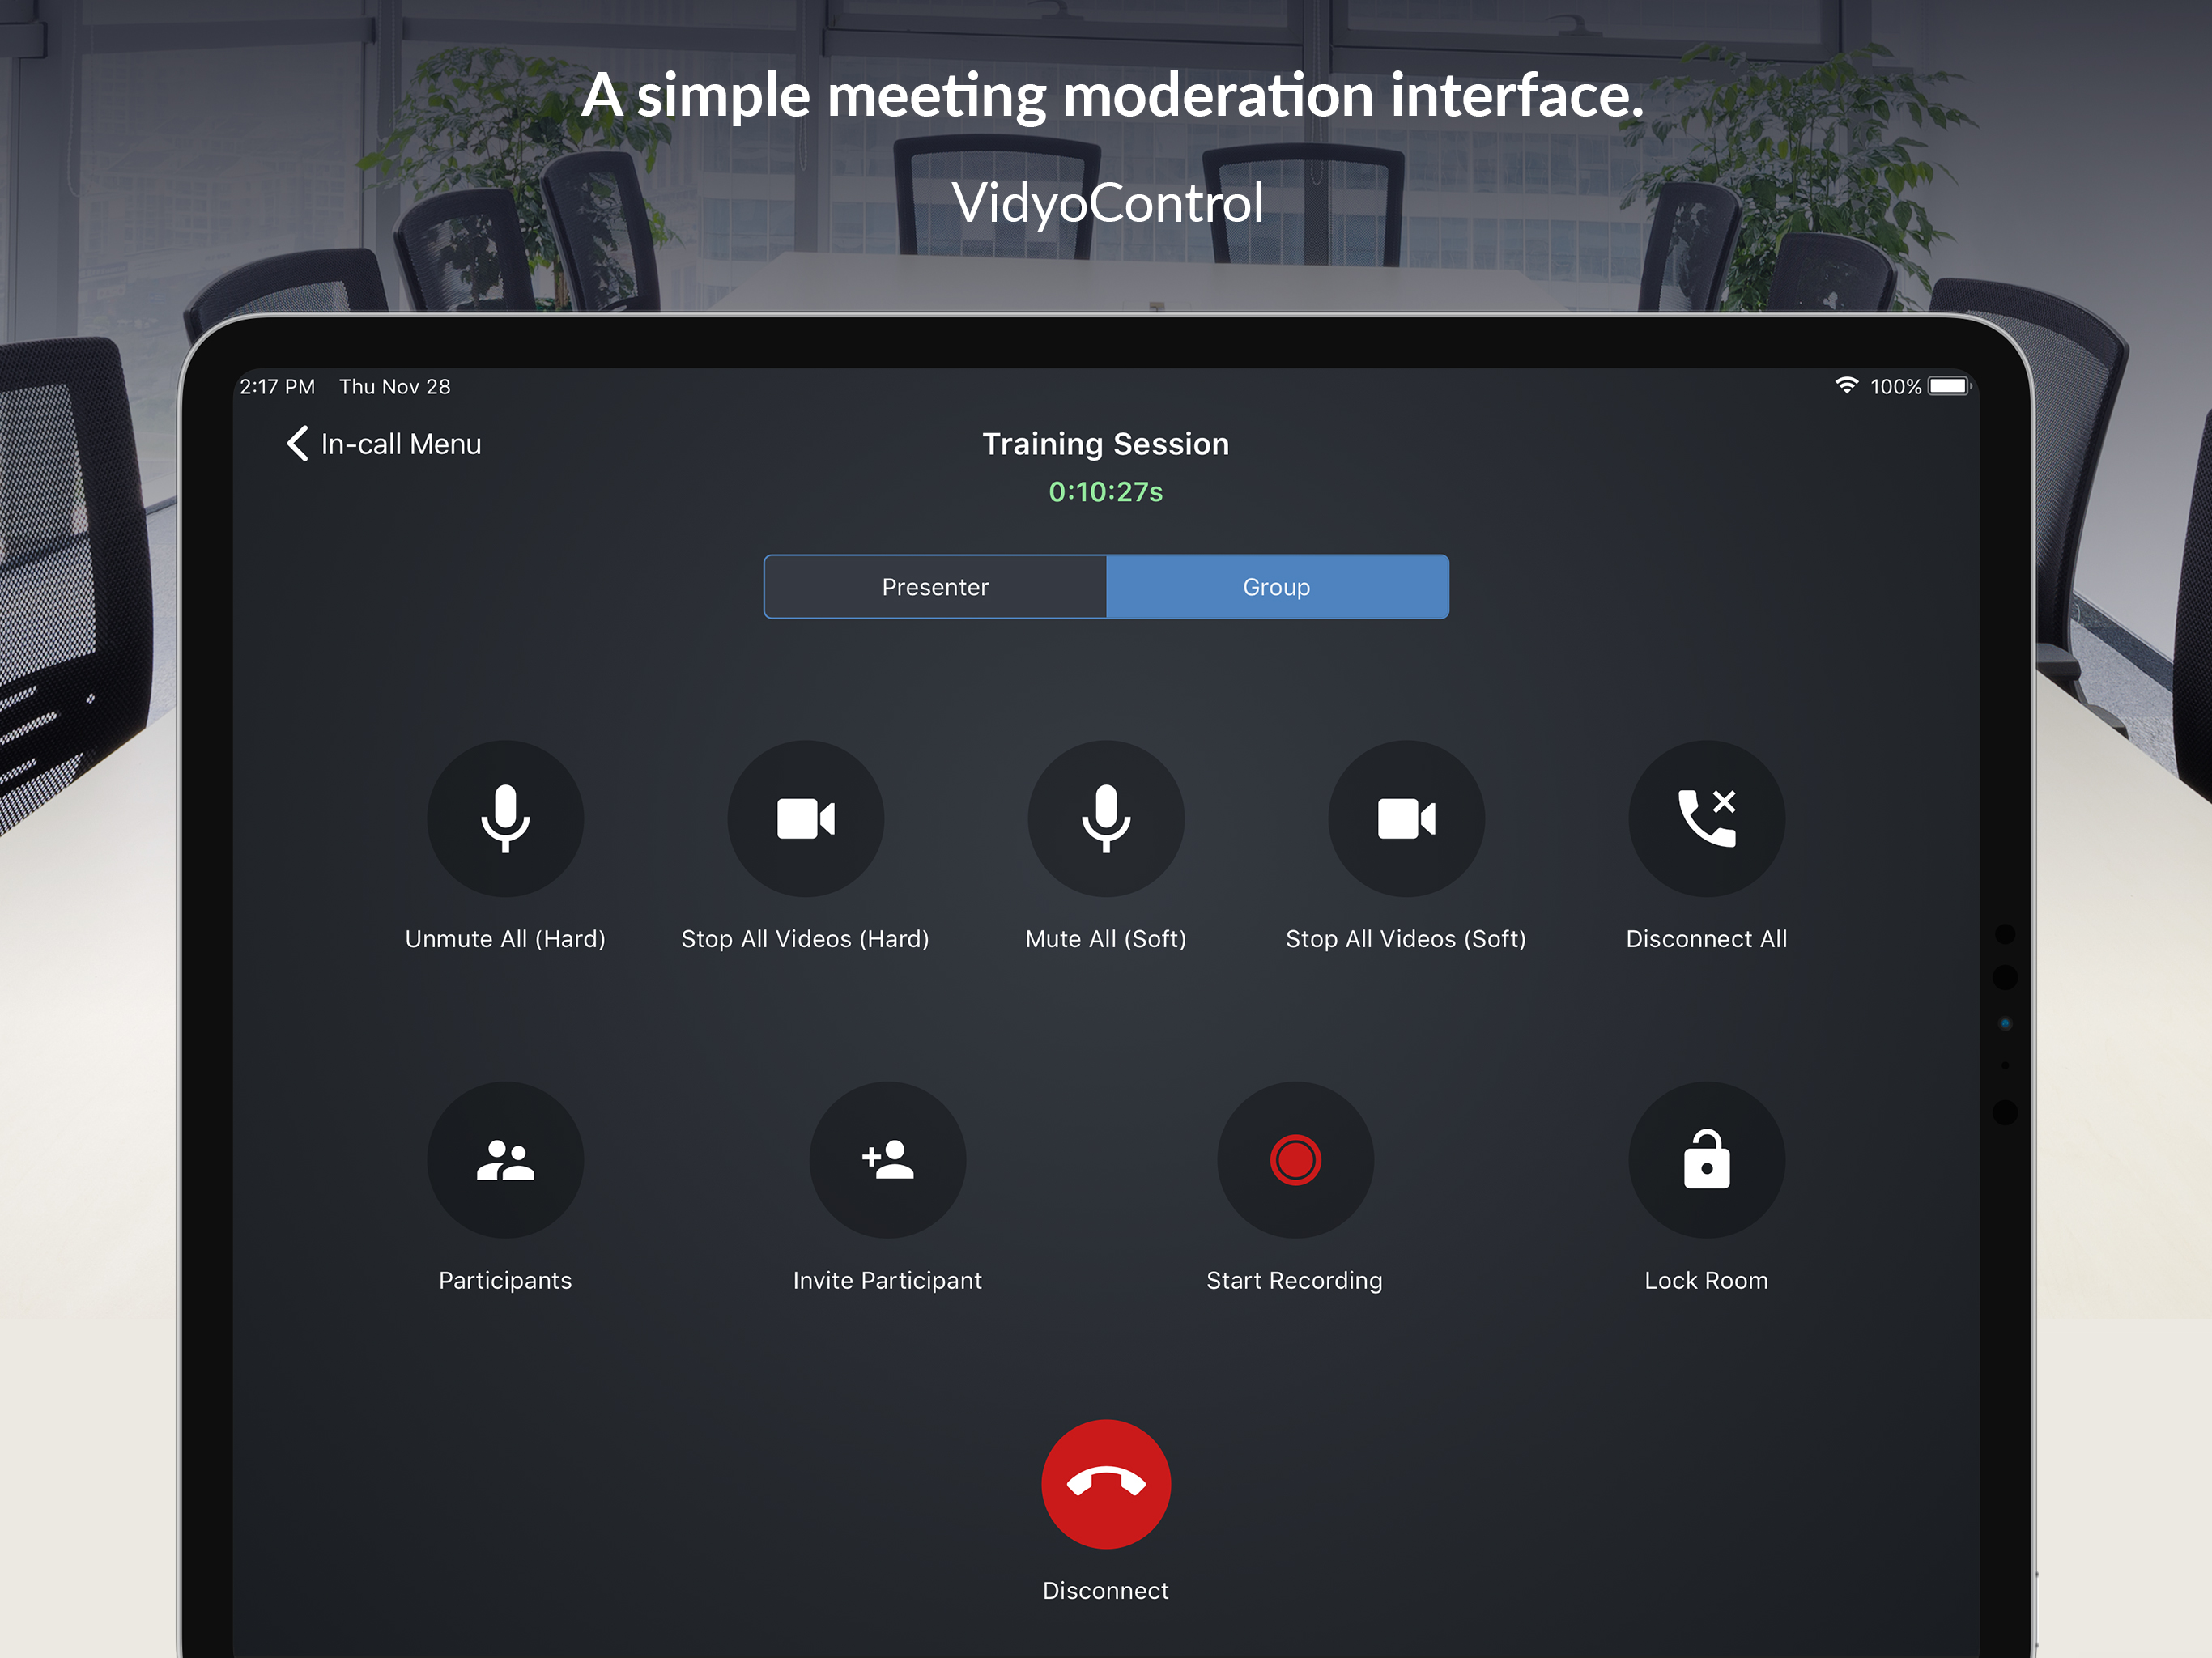 VidyoControl-AppleStore_Images_0001_a_simple_moderation_interface.jpg